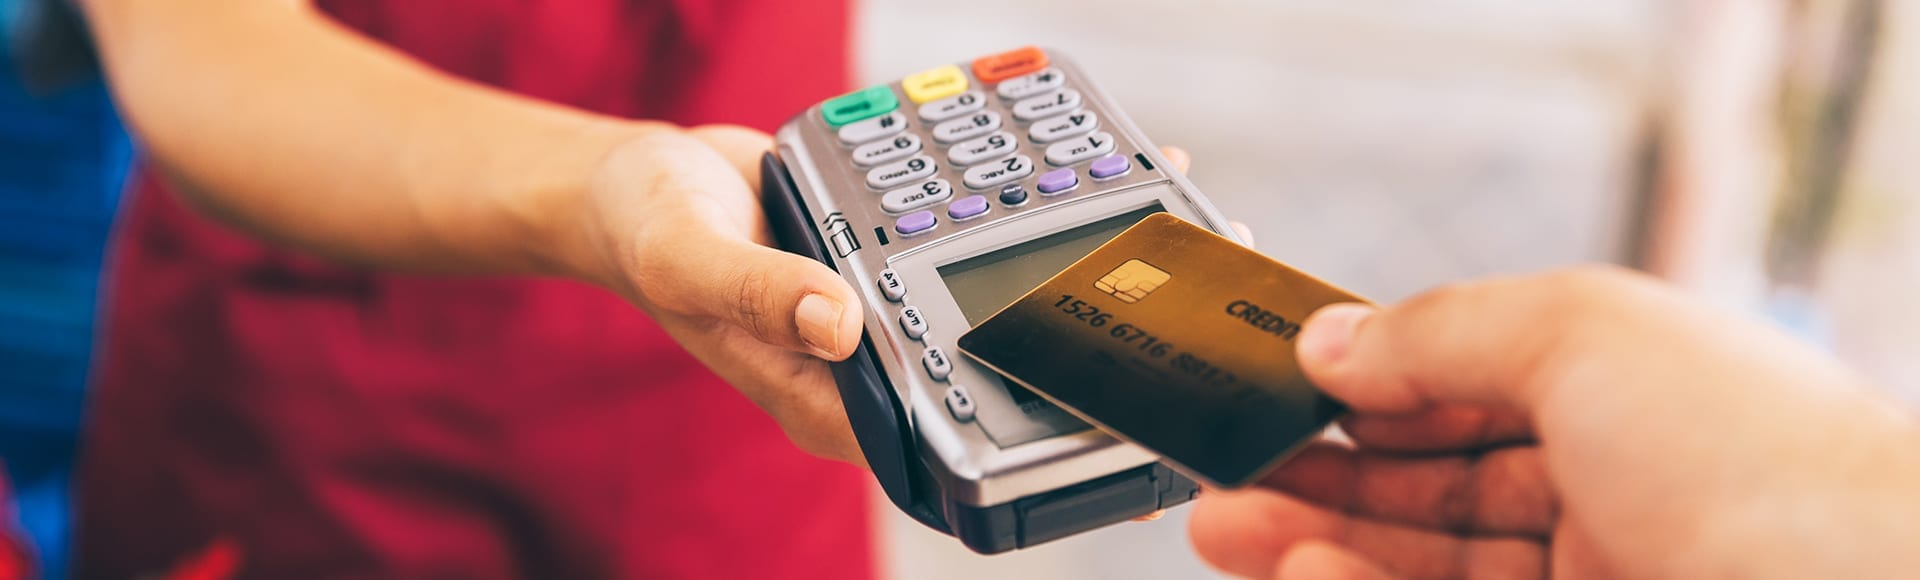 A contactless credit card making a payment with a card reader